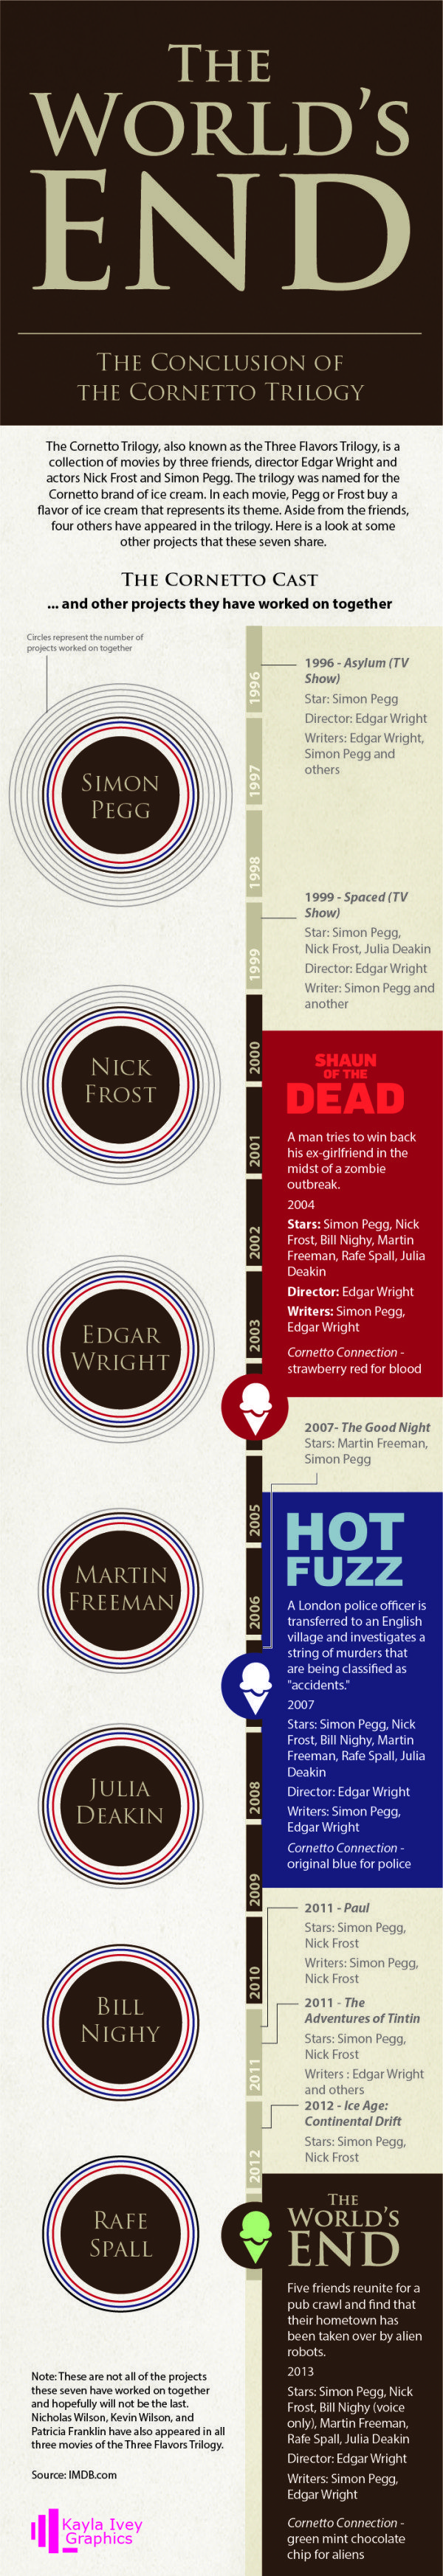 Infographic showing The Cornetto Trilogy, a collection of movies by director Edgar Wright and actors Simon Pegg and Nick Frost, and the connections between cast members including: Martin Freeman, Bill Nighy, Rafe Spall, Julia Deakin, and others from Shaun of the Dead, Hot Fuzz, and the World's End.